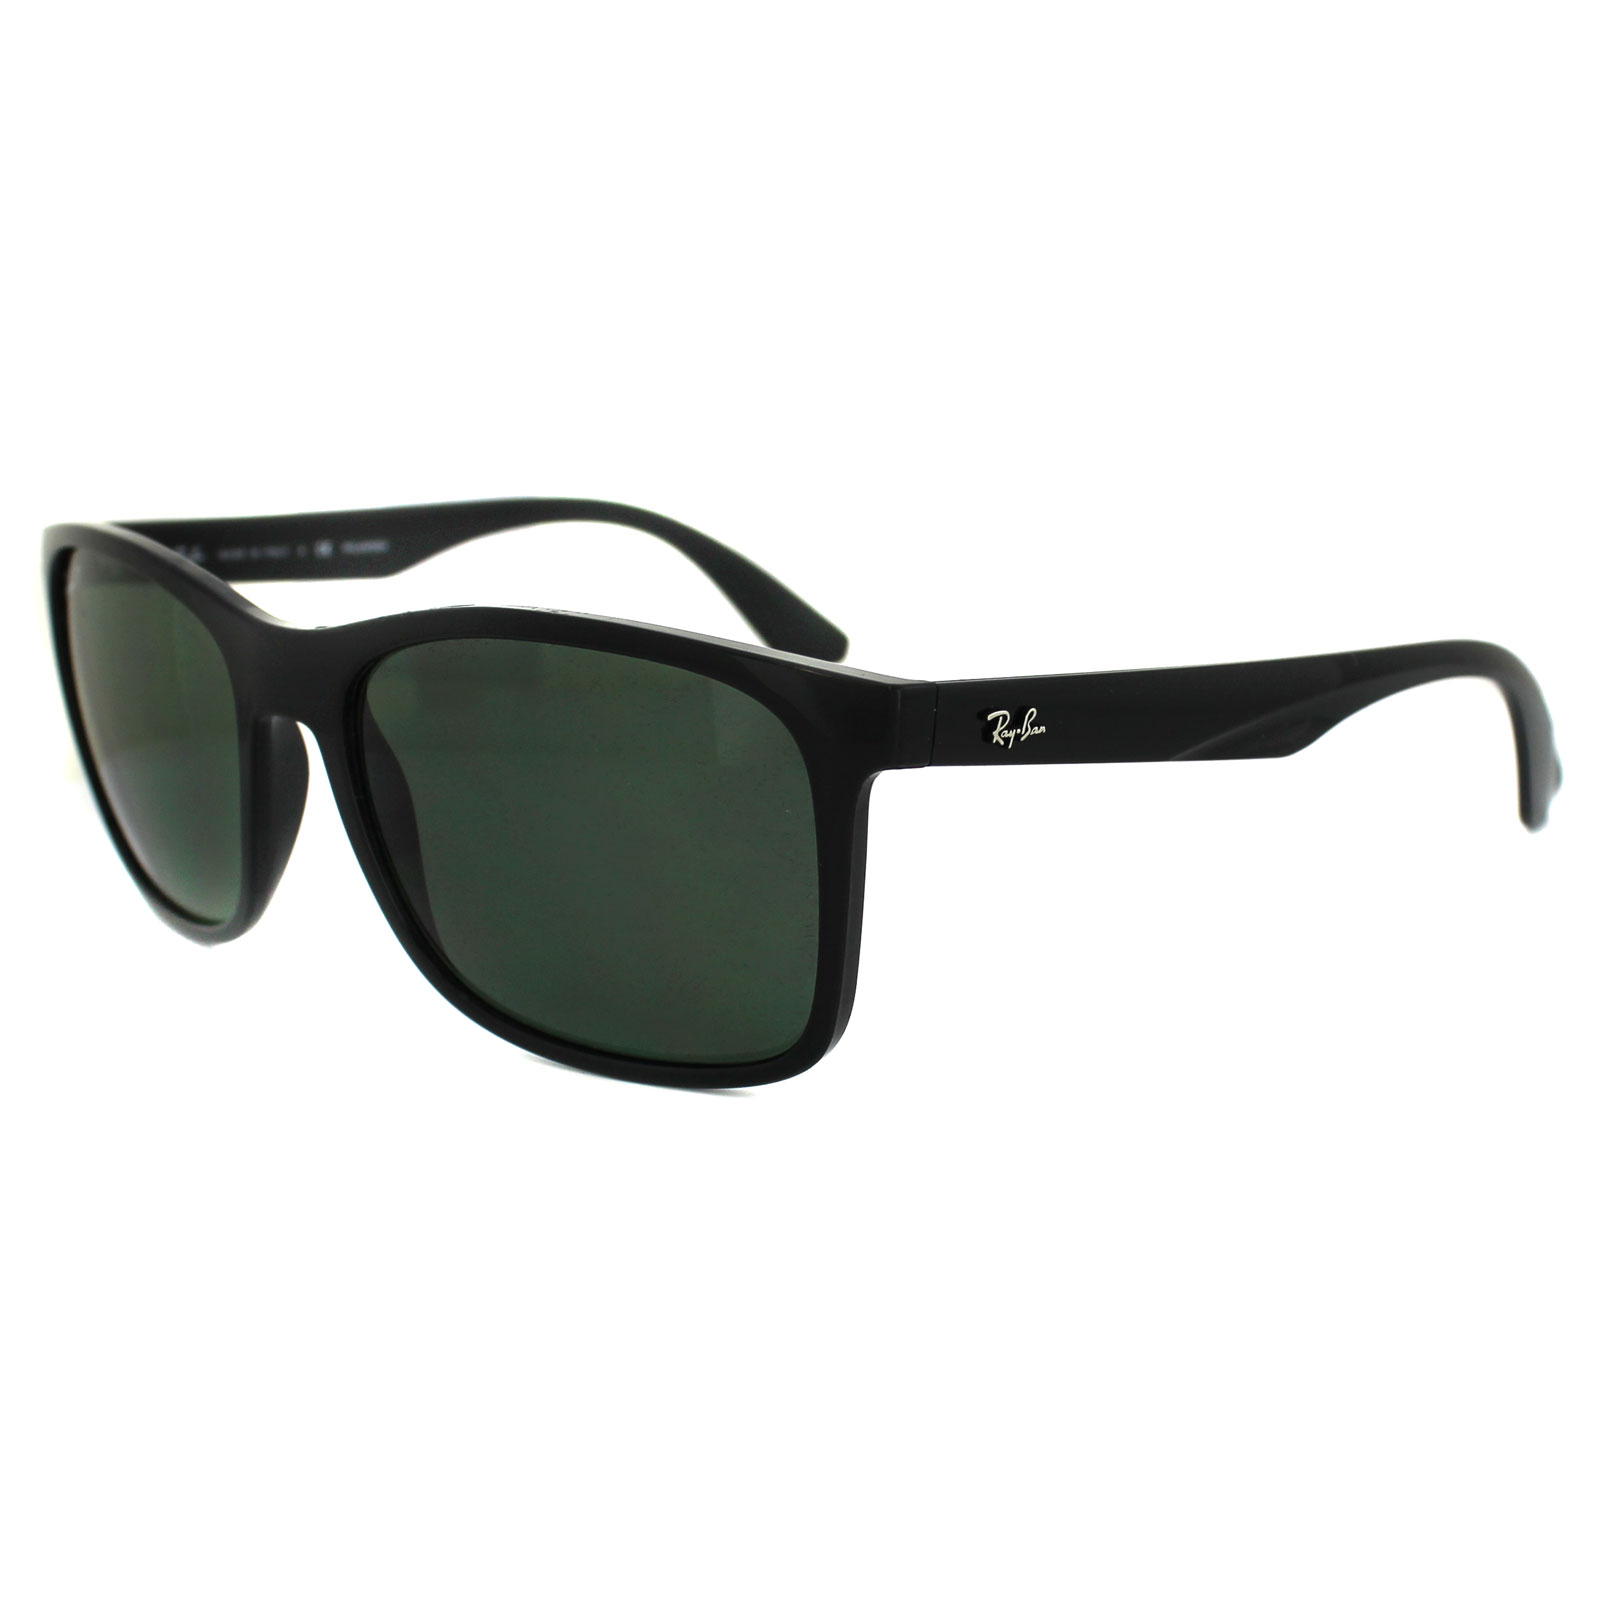 65b9dc45e9 Cheap Ray-Ban 4232 Sunglasses - Discounted Sunglasses